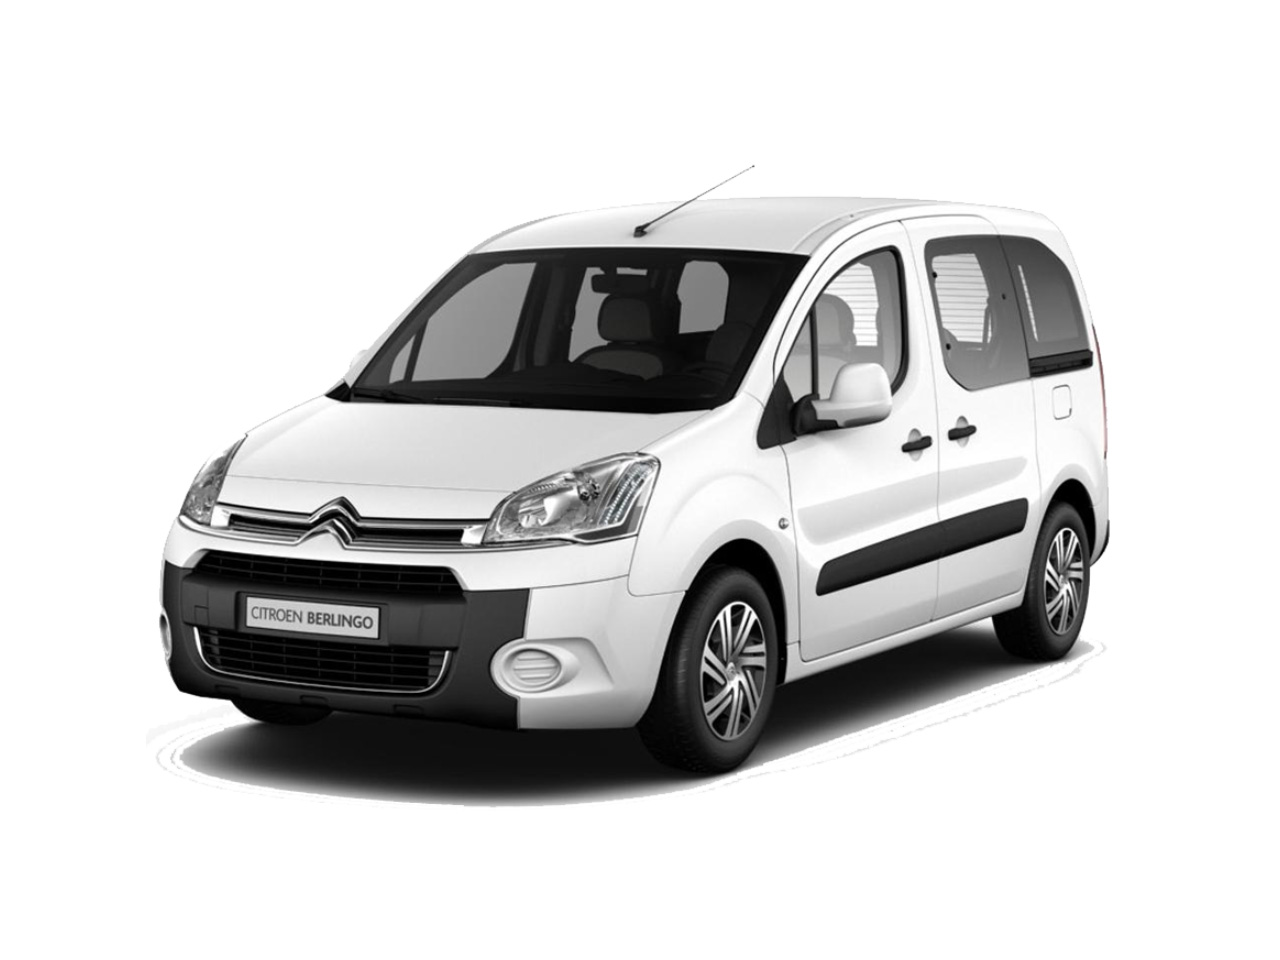 2018 citroen berlingo prices in uae gulf specs reviews for dubai abu dhabi and sharjah. Black Bedroom Furniture Sets. Home Design Ideas